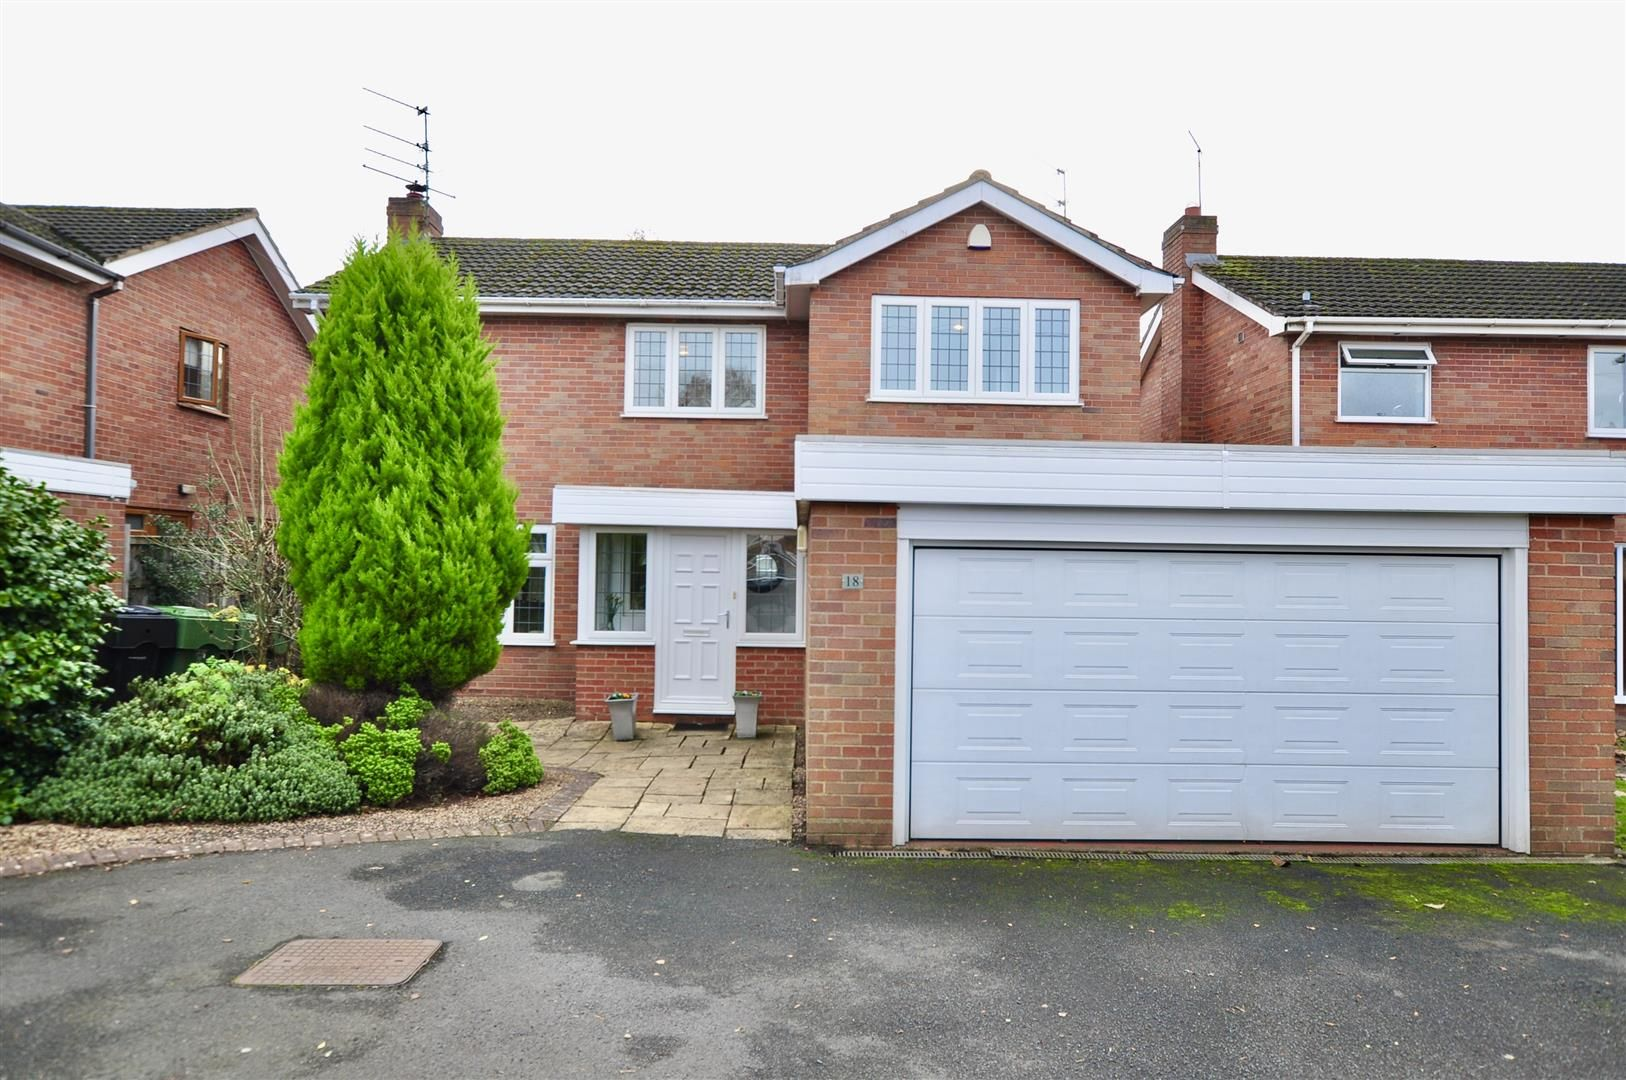 4 bed house for sale in Hagley 28